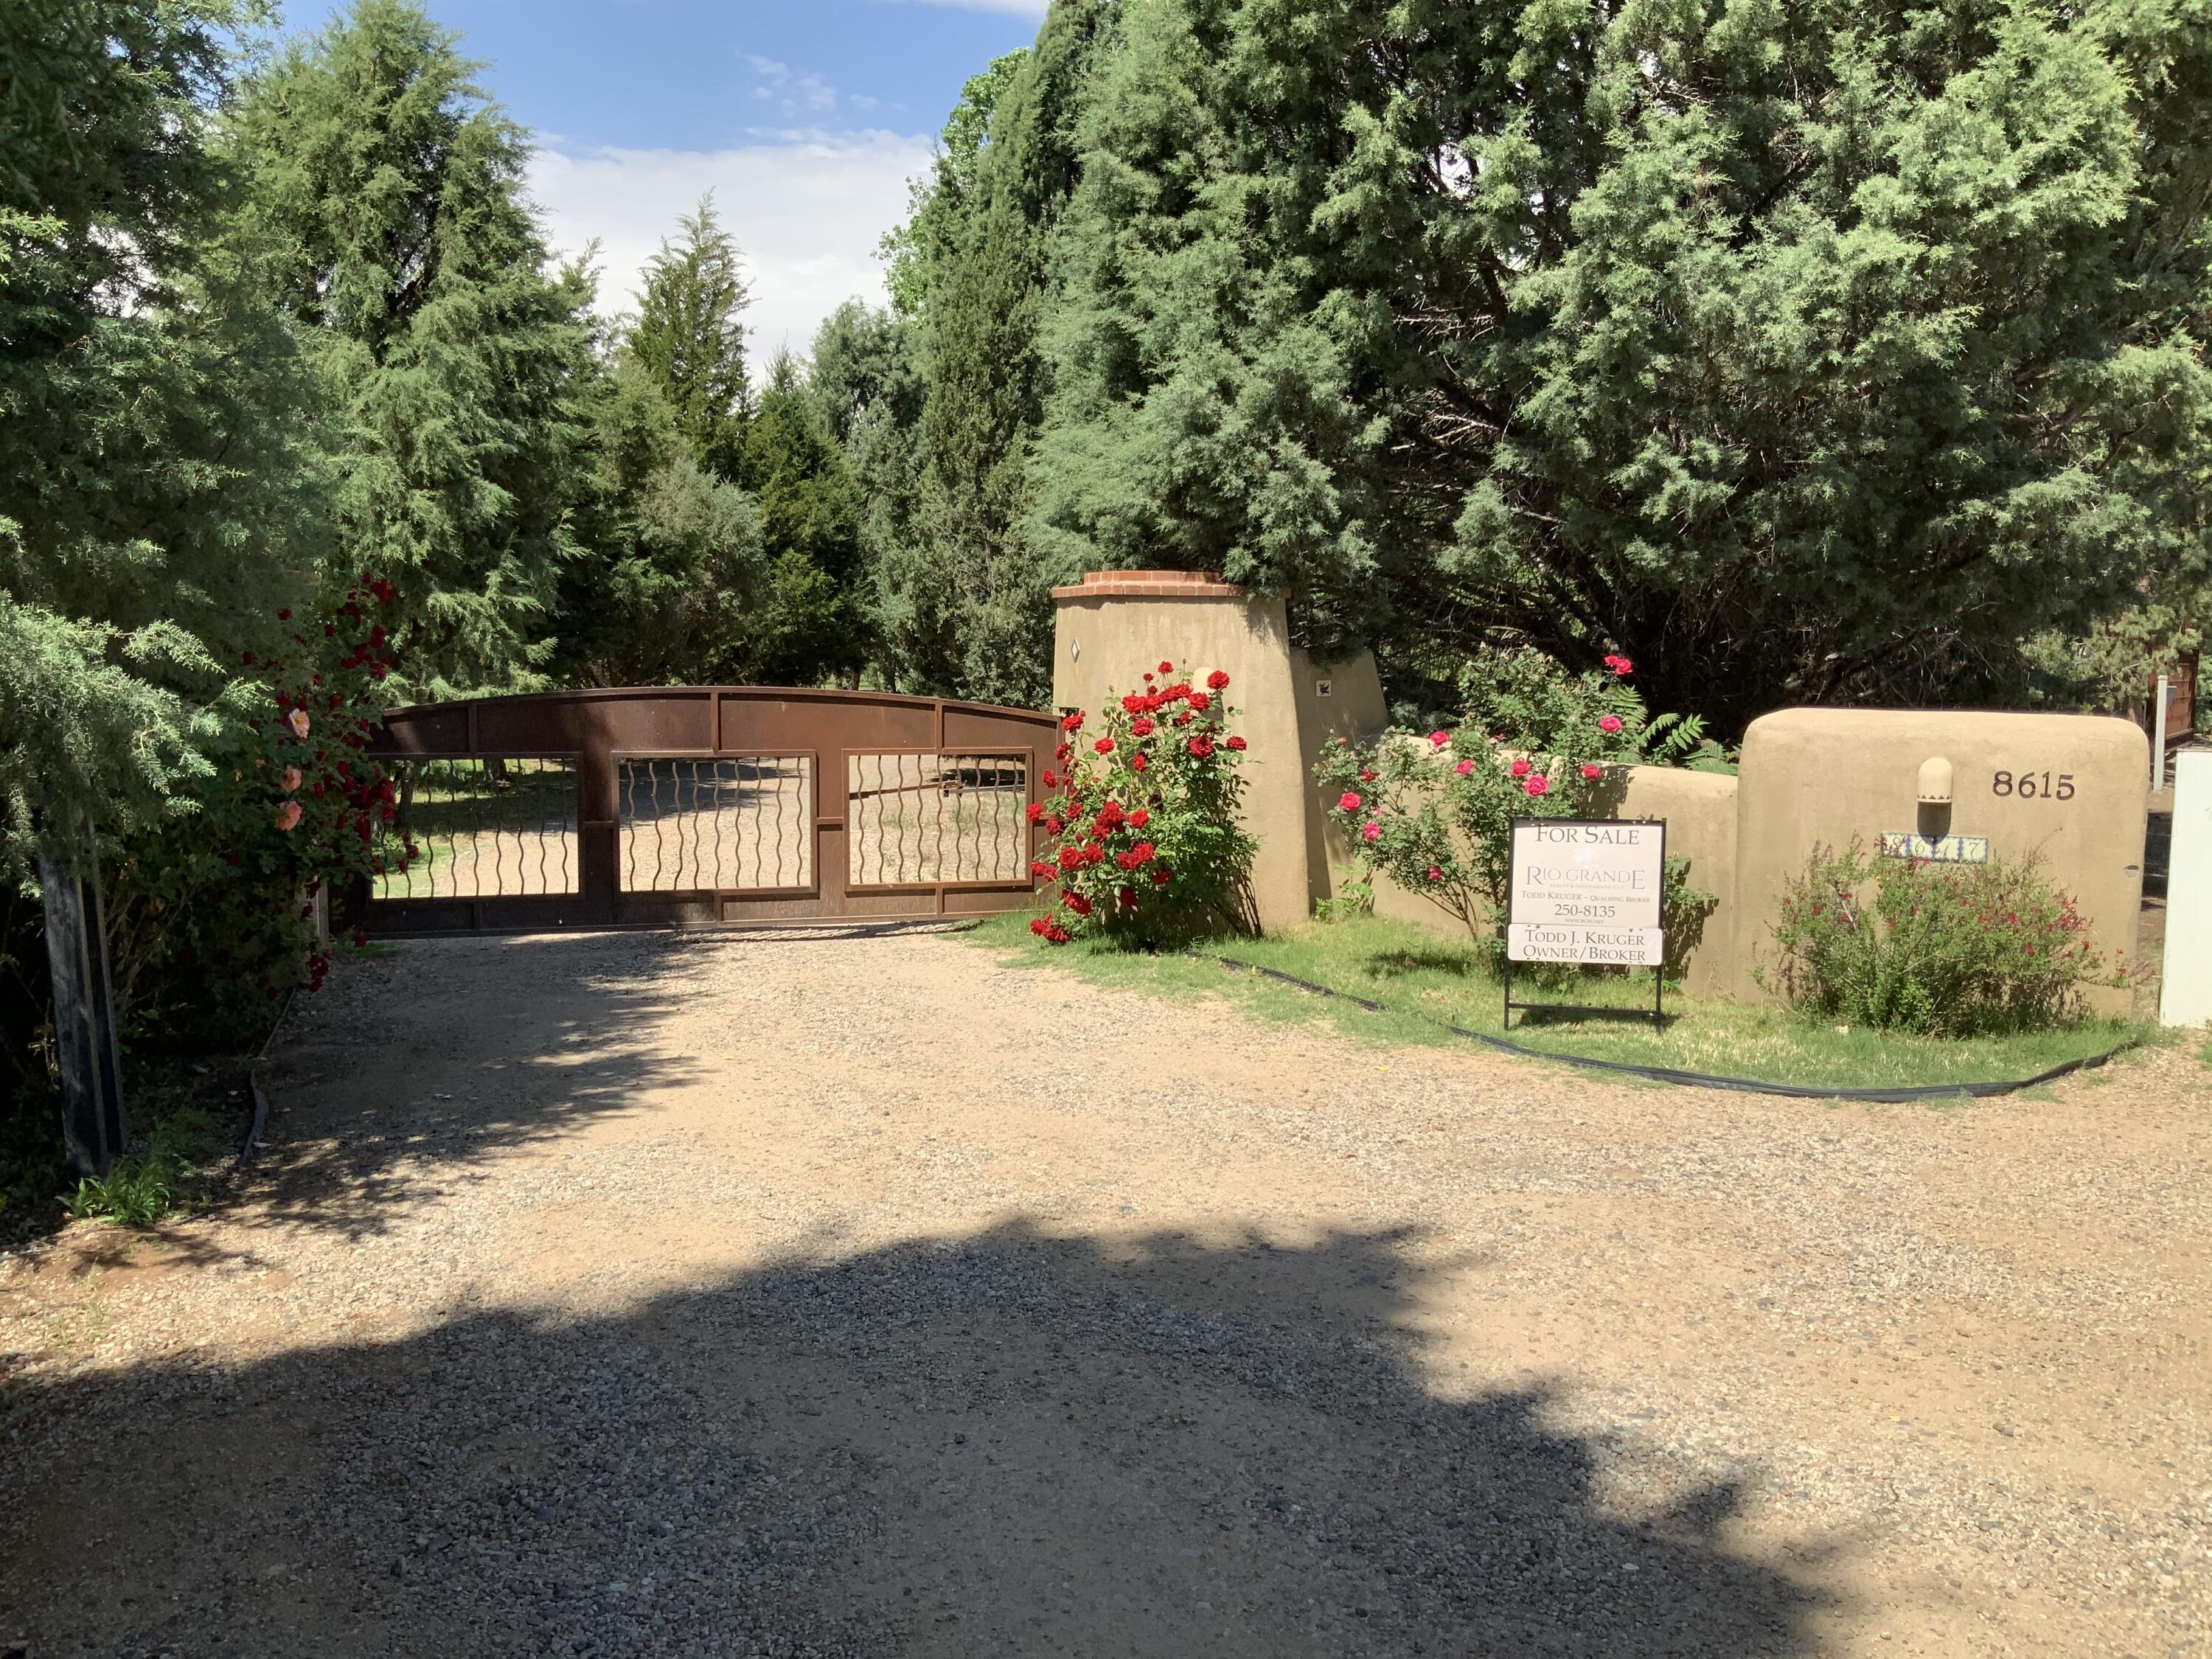 WOW!  Your own north valley paradise of 1.63 acres with a private gate and a spectacular 350 tree apple orchard.  This wonderful cottage was originally built in 2014 and reciently renovated to approx. 1400sqft with new updates throughout.  Owner can build new home up to 10,000sqft here in dedicated building envelope (see attached Summary Plat)Existing home would be wonderful guest house incorporated with new residence!  City Water & City Sewer and irrigation well for orchard.